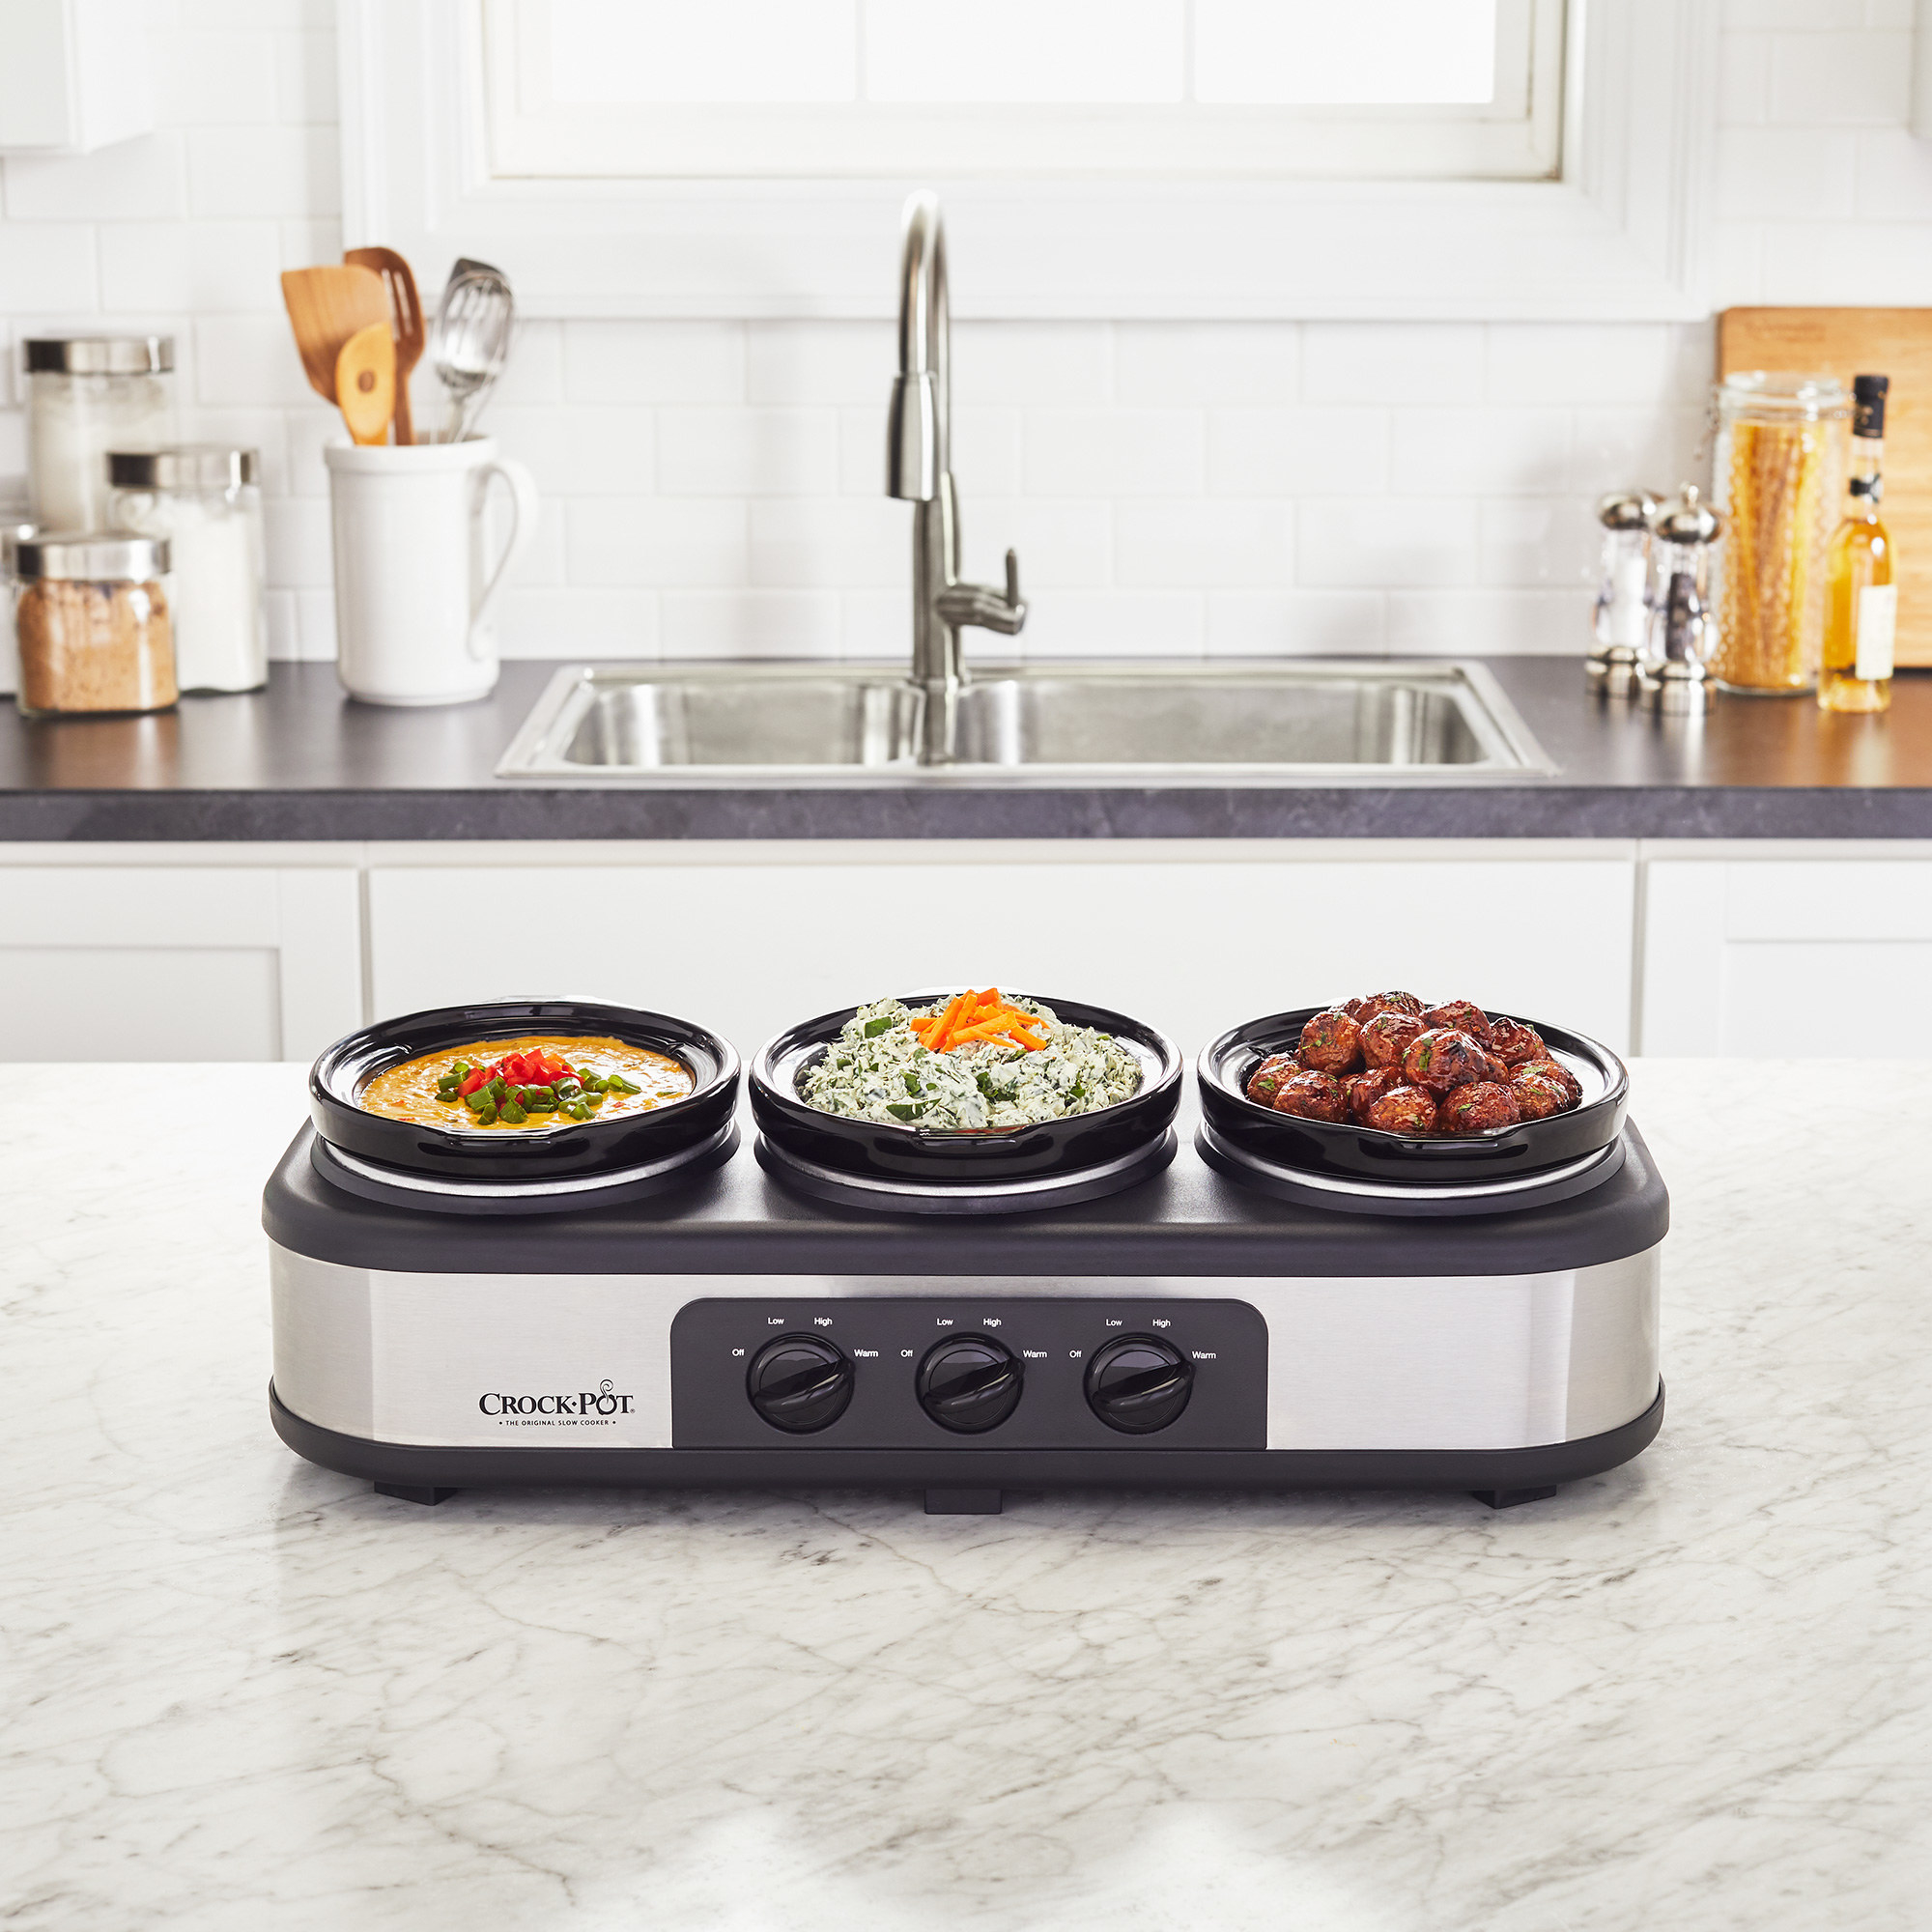 trio slow cooker on a kitchen counter with appetizers in it